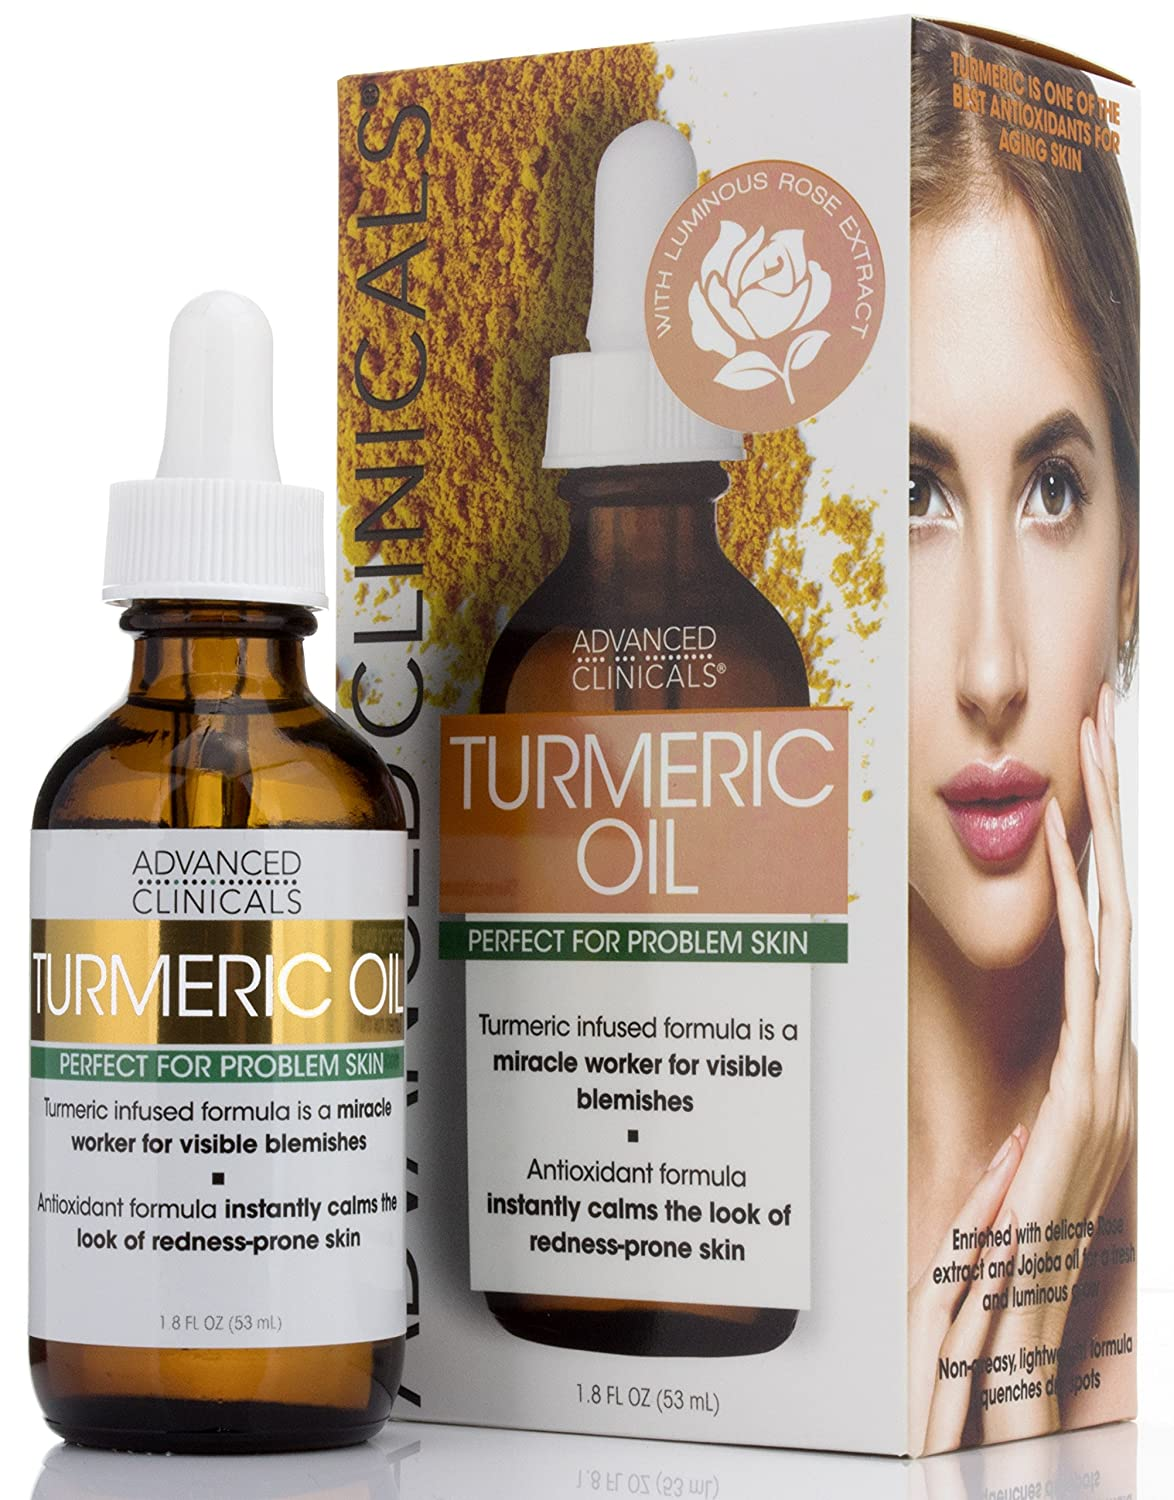 Advanced Clinicals Turmeric Oil for face. Antioxidant formula with Rose Extract and Jojoba oil for dry skin redness and skin blemishes. Large 1.8oz glass bottle with dropper.